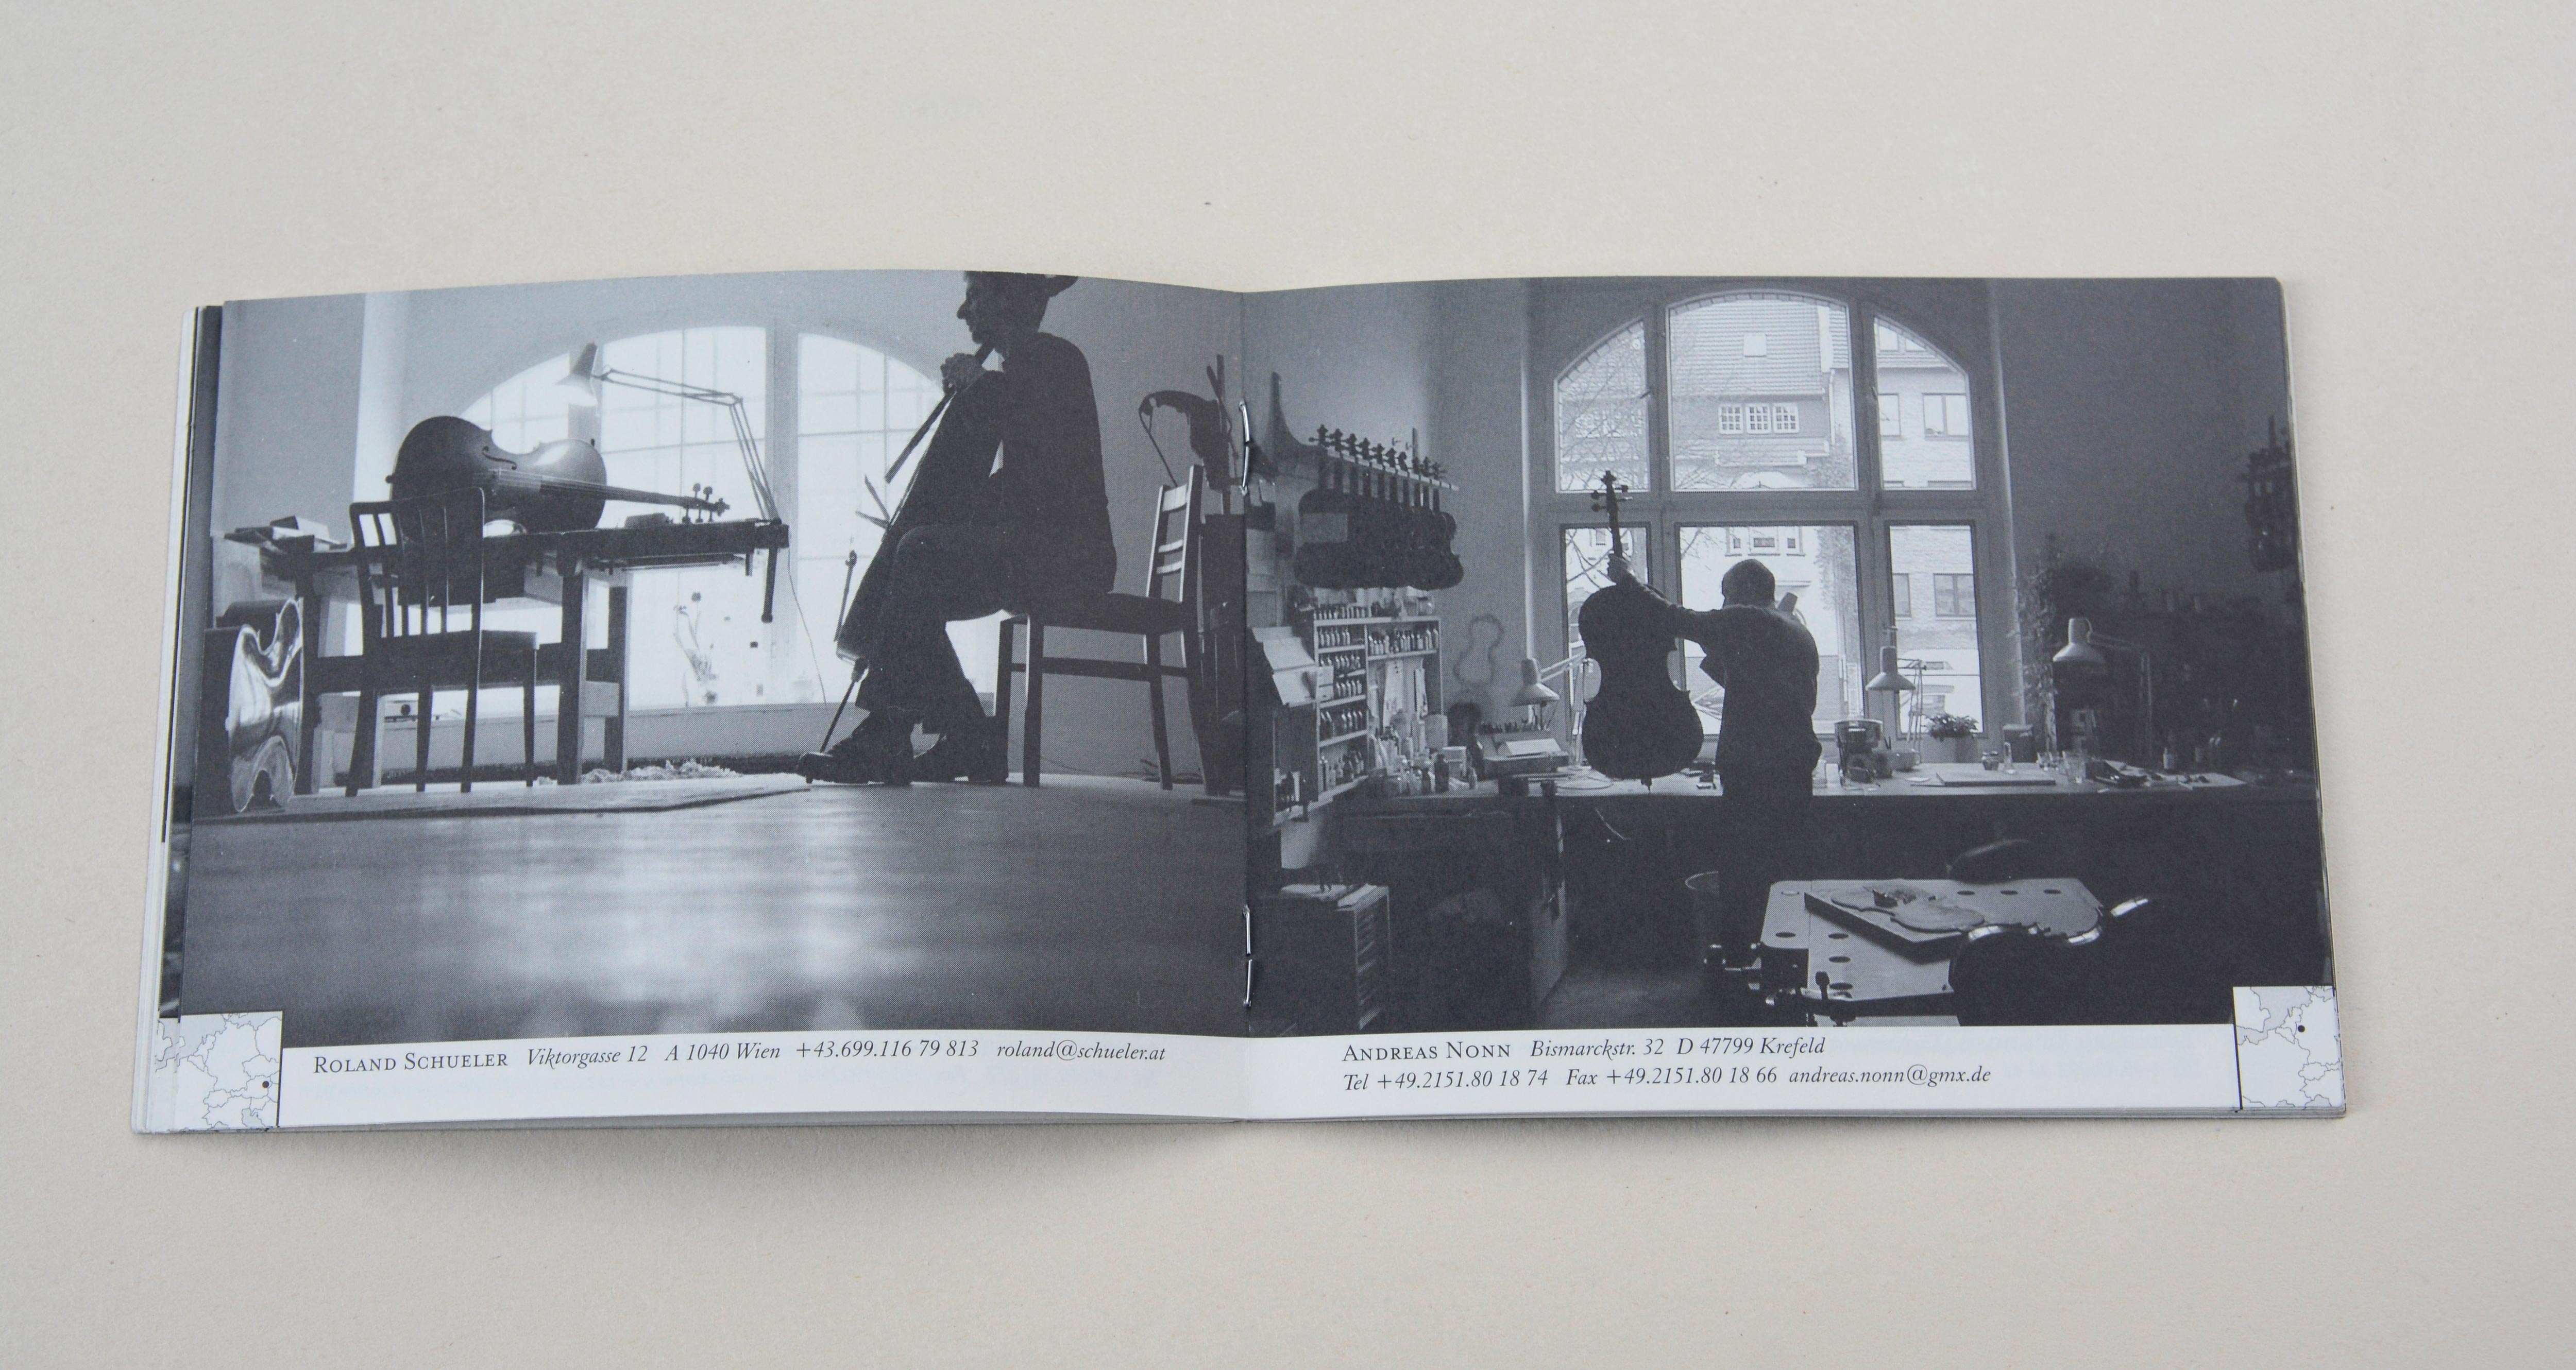 Double page. On each page full-page b/w photos. Thumbnail sized map with marking point at bottom corner. Line of small text in white space underneath. Left: Man sitting in a workshop. He plays a chello. Right: Man standing in a workshop in front of workbench. He holds chello in his hand.